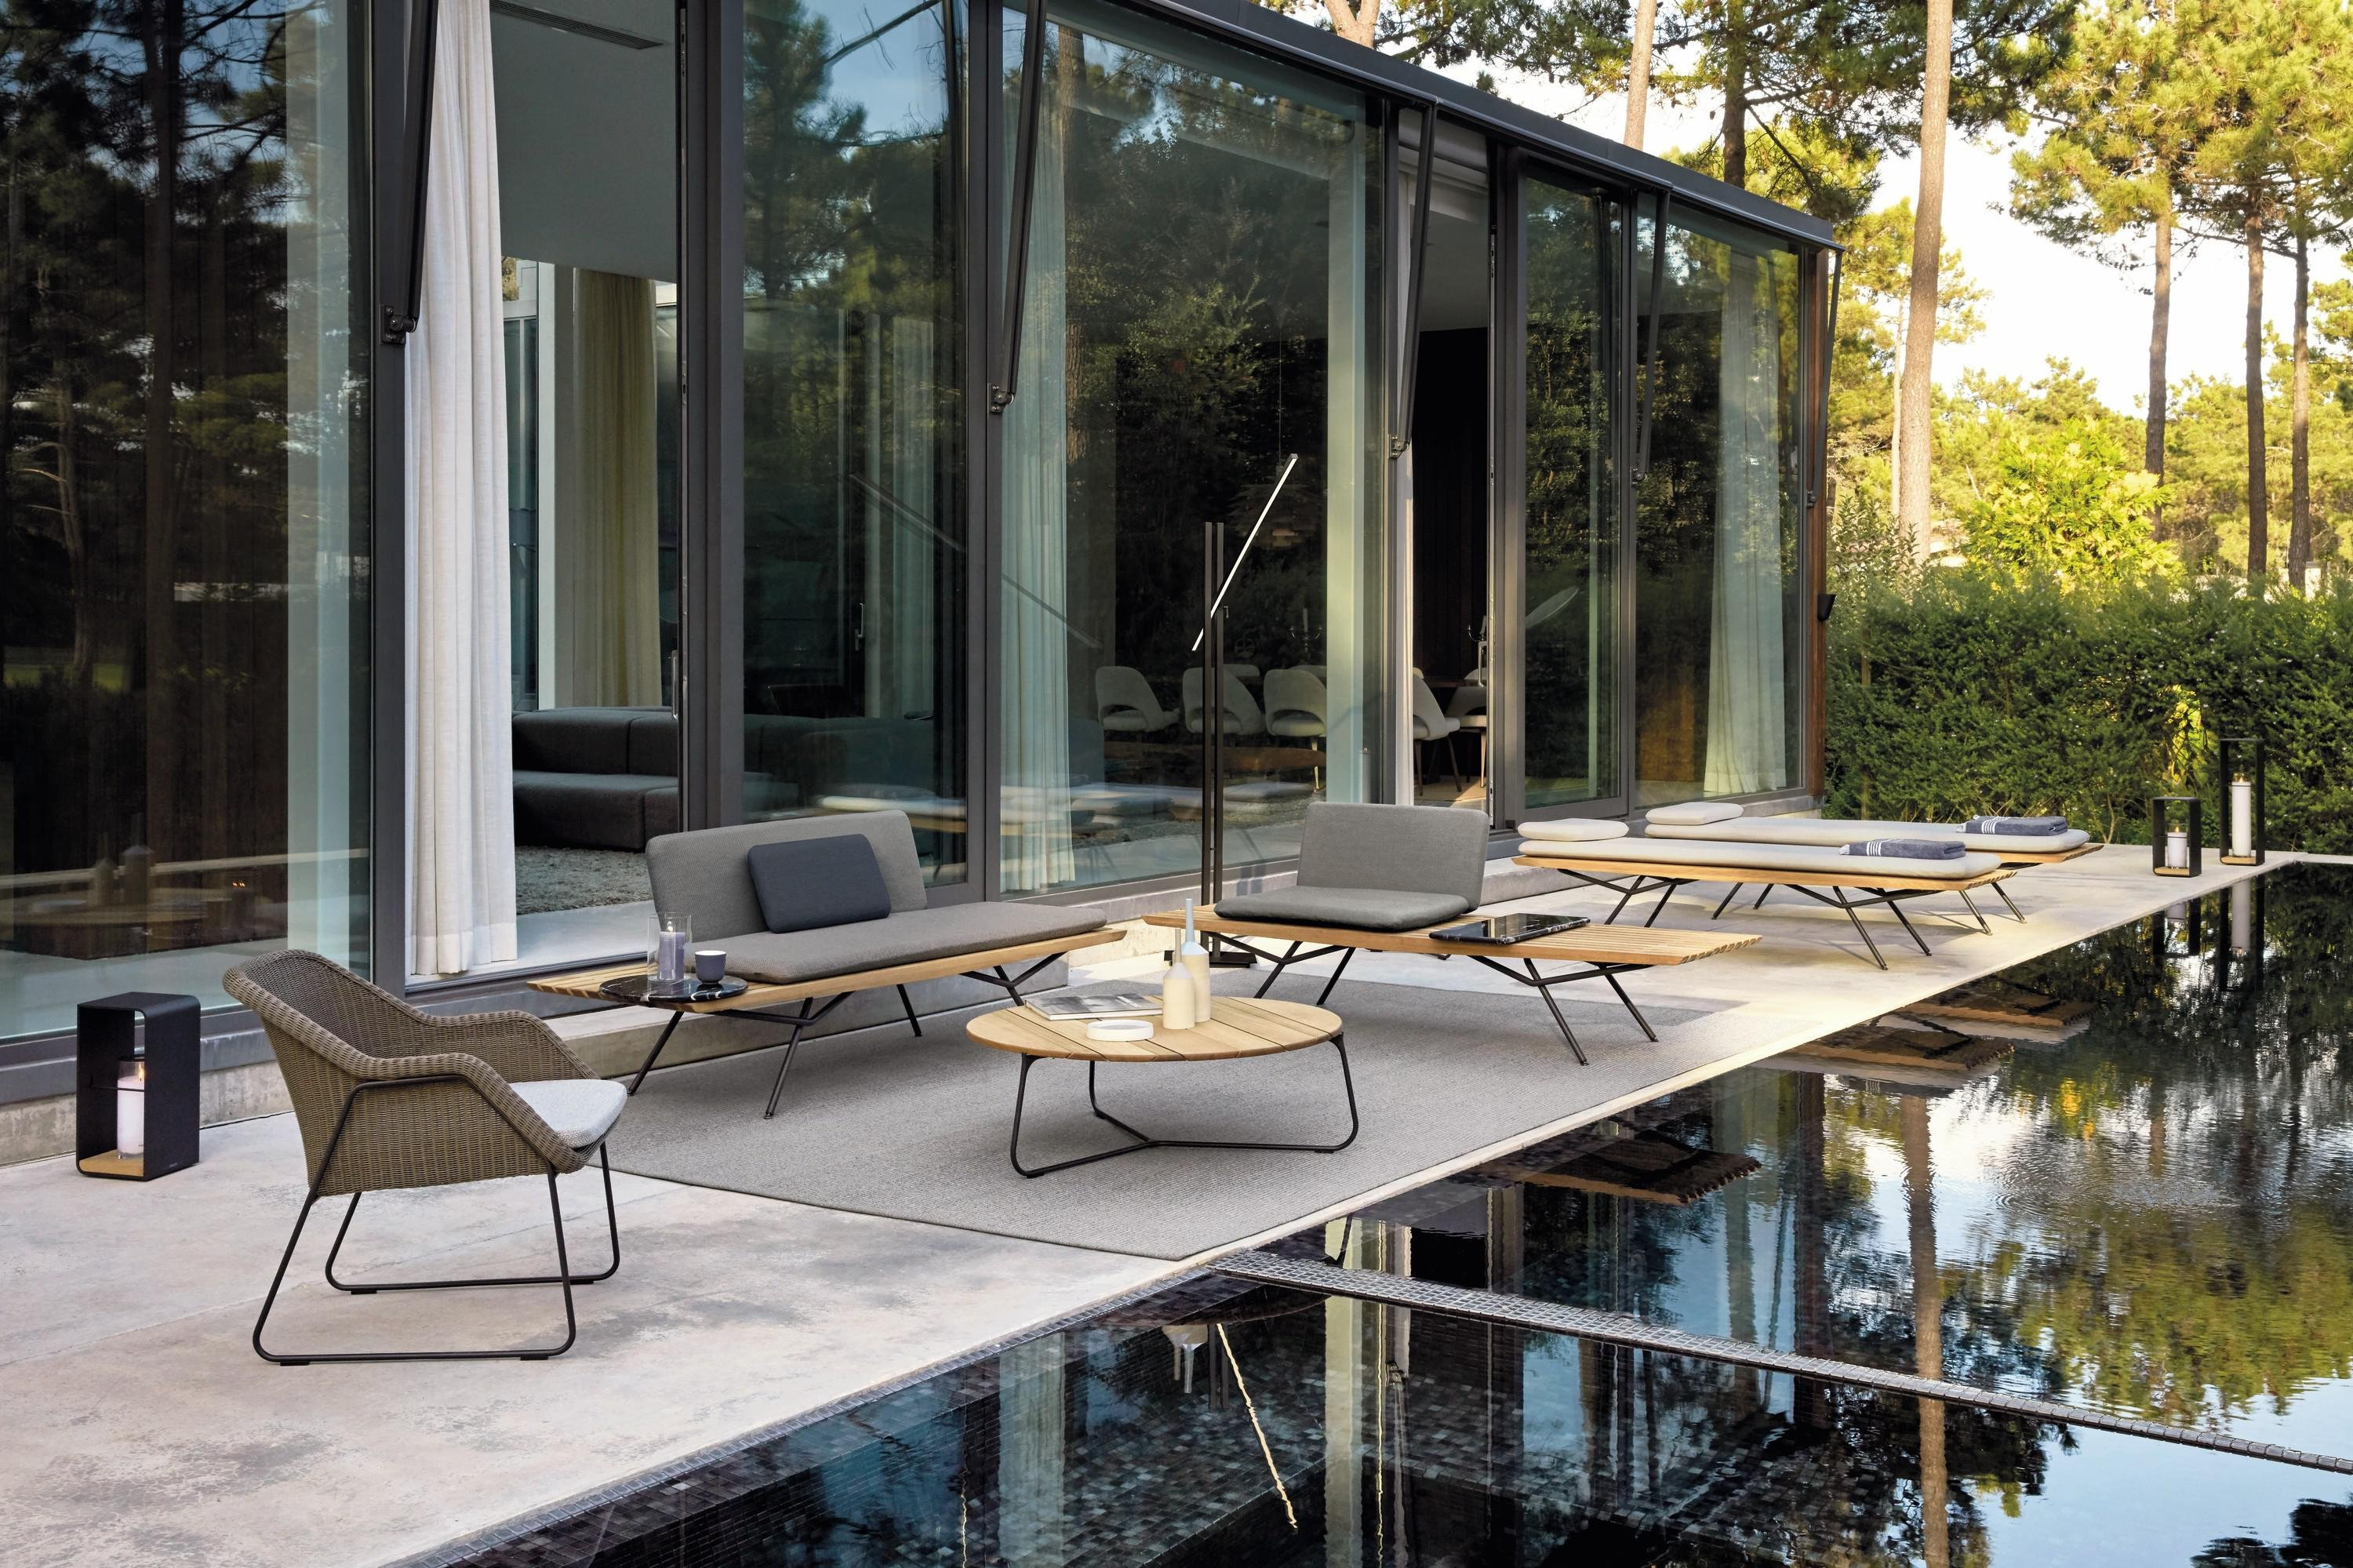 San Lounger from Manutti, designed by Lionel Doyen